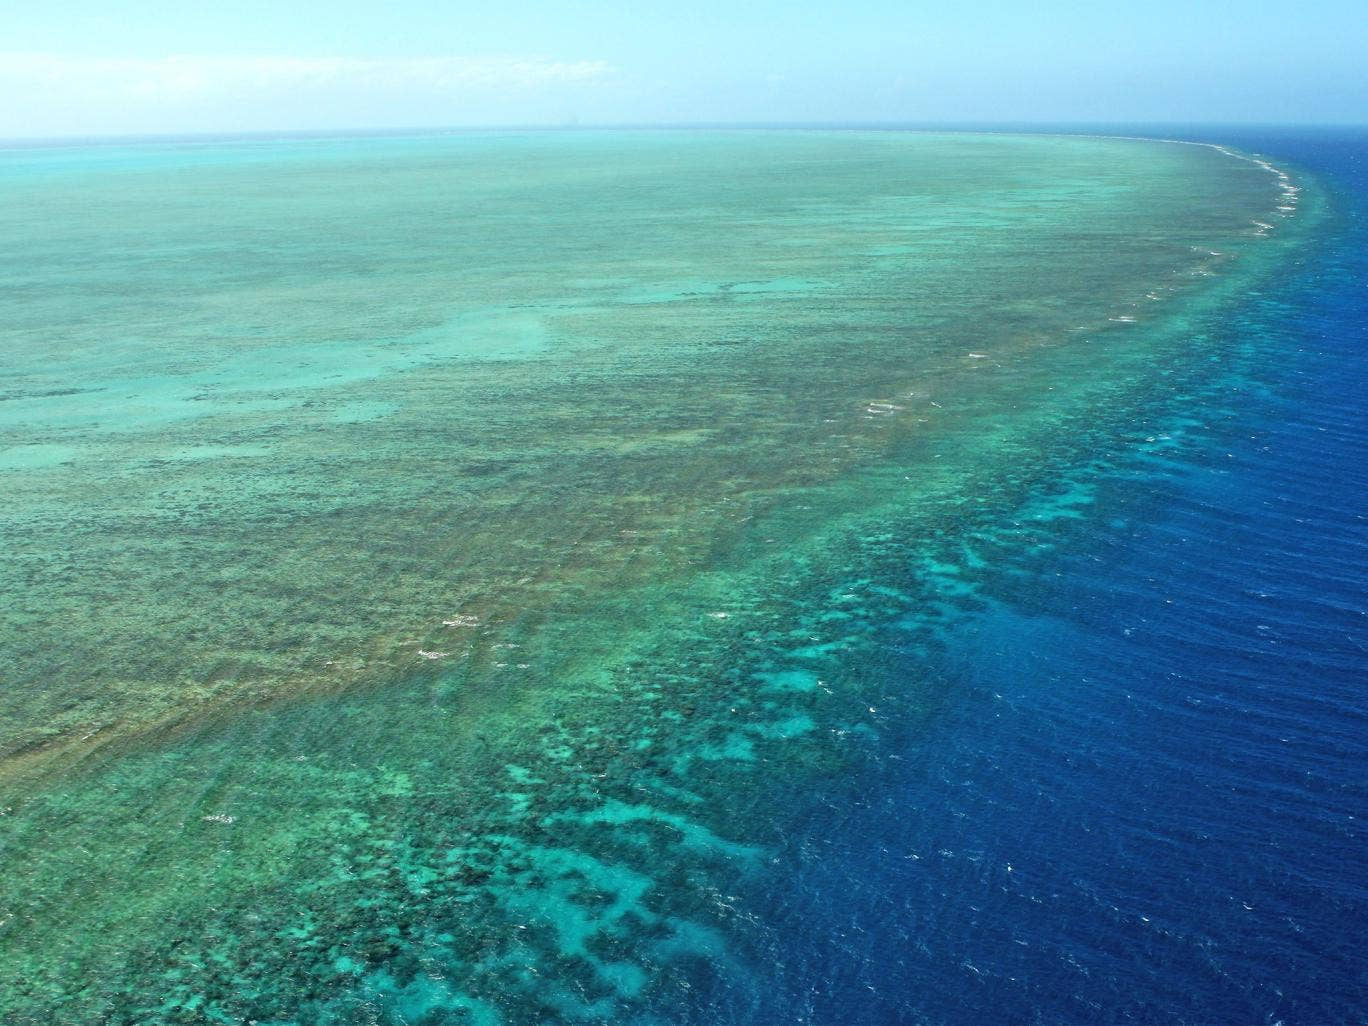 The Great Barrier Reef faces multiple threats